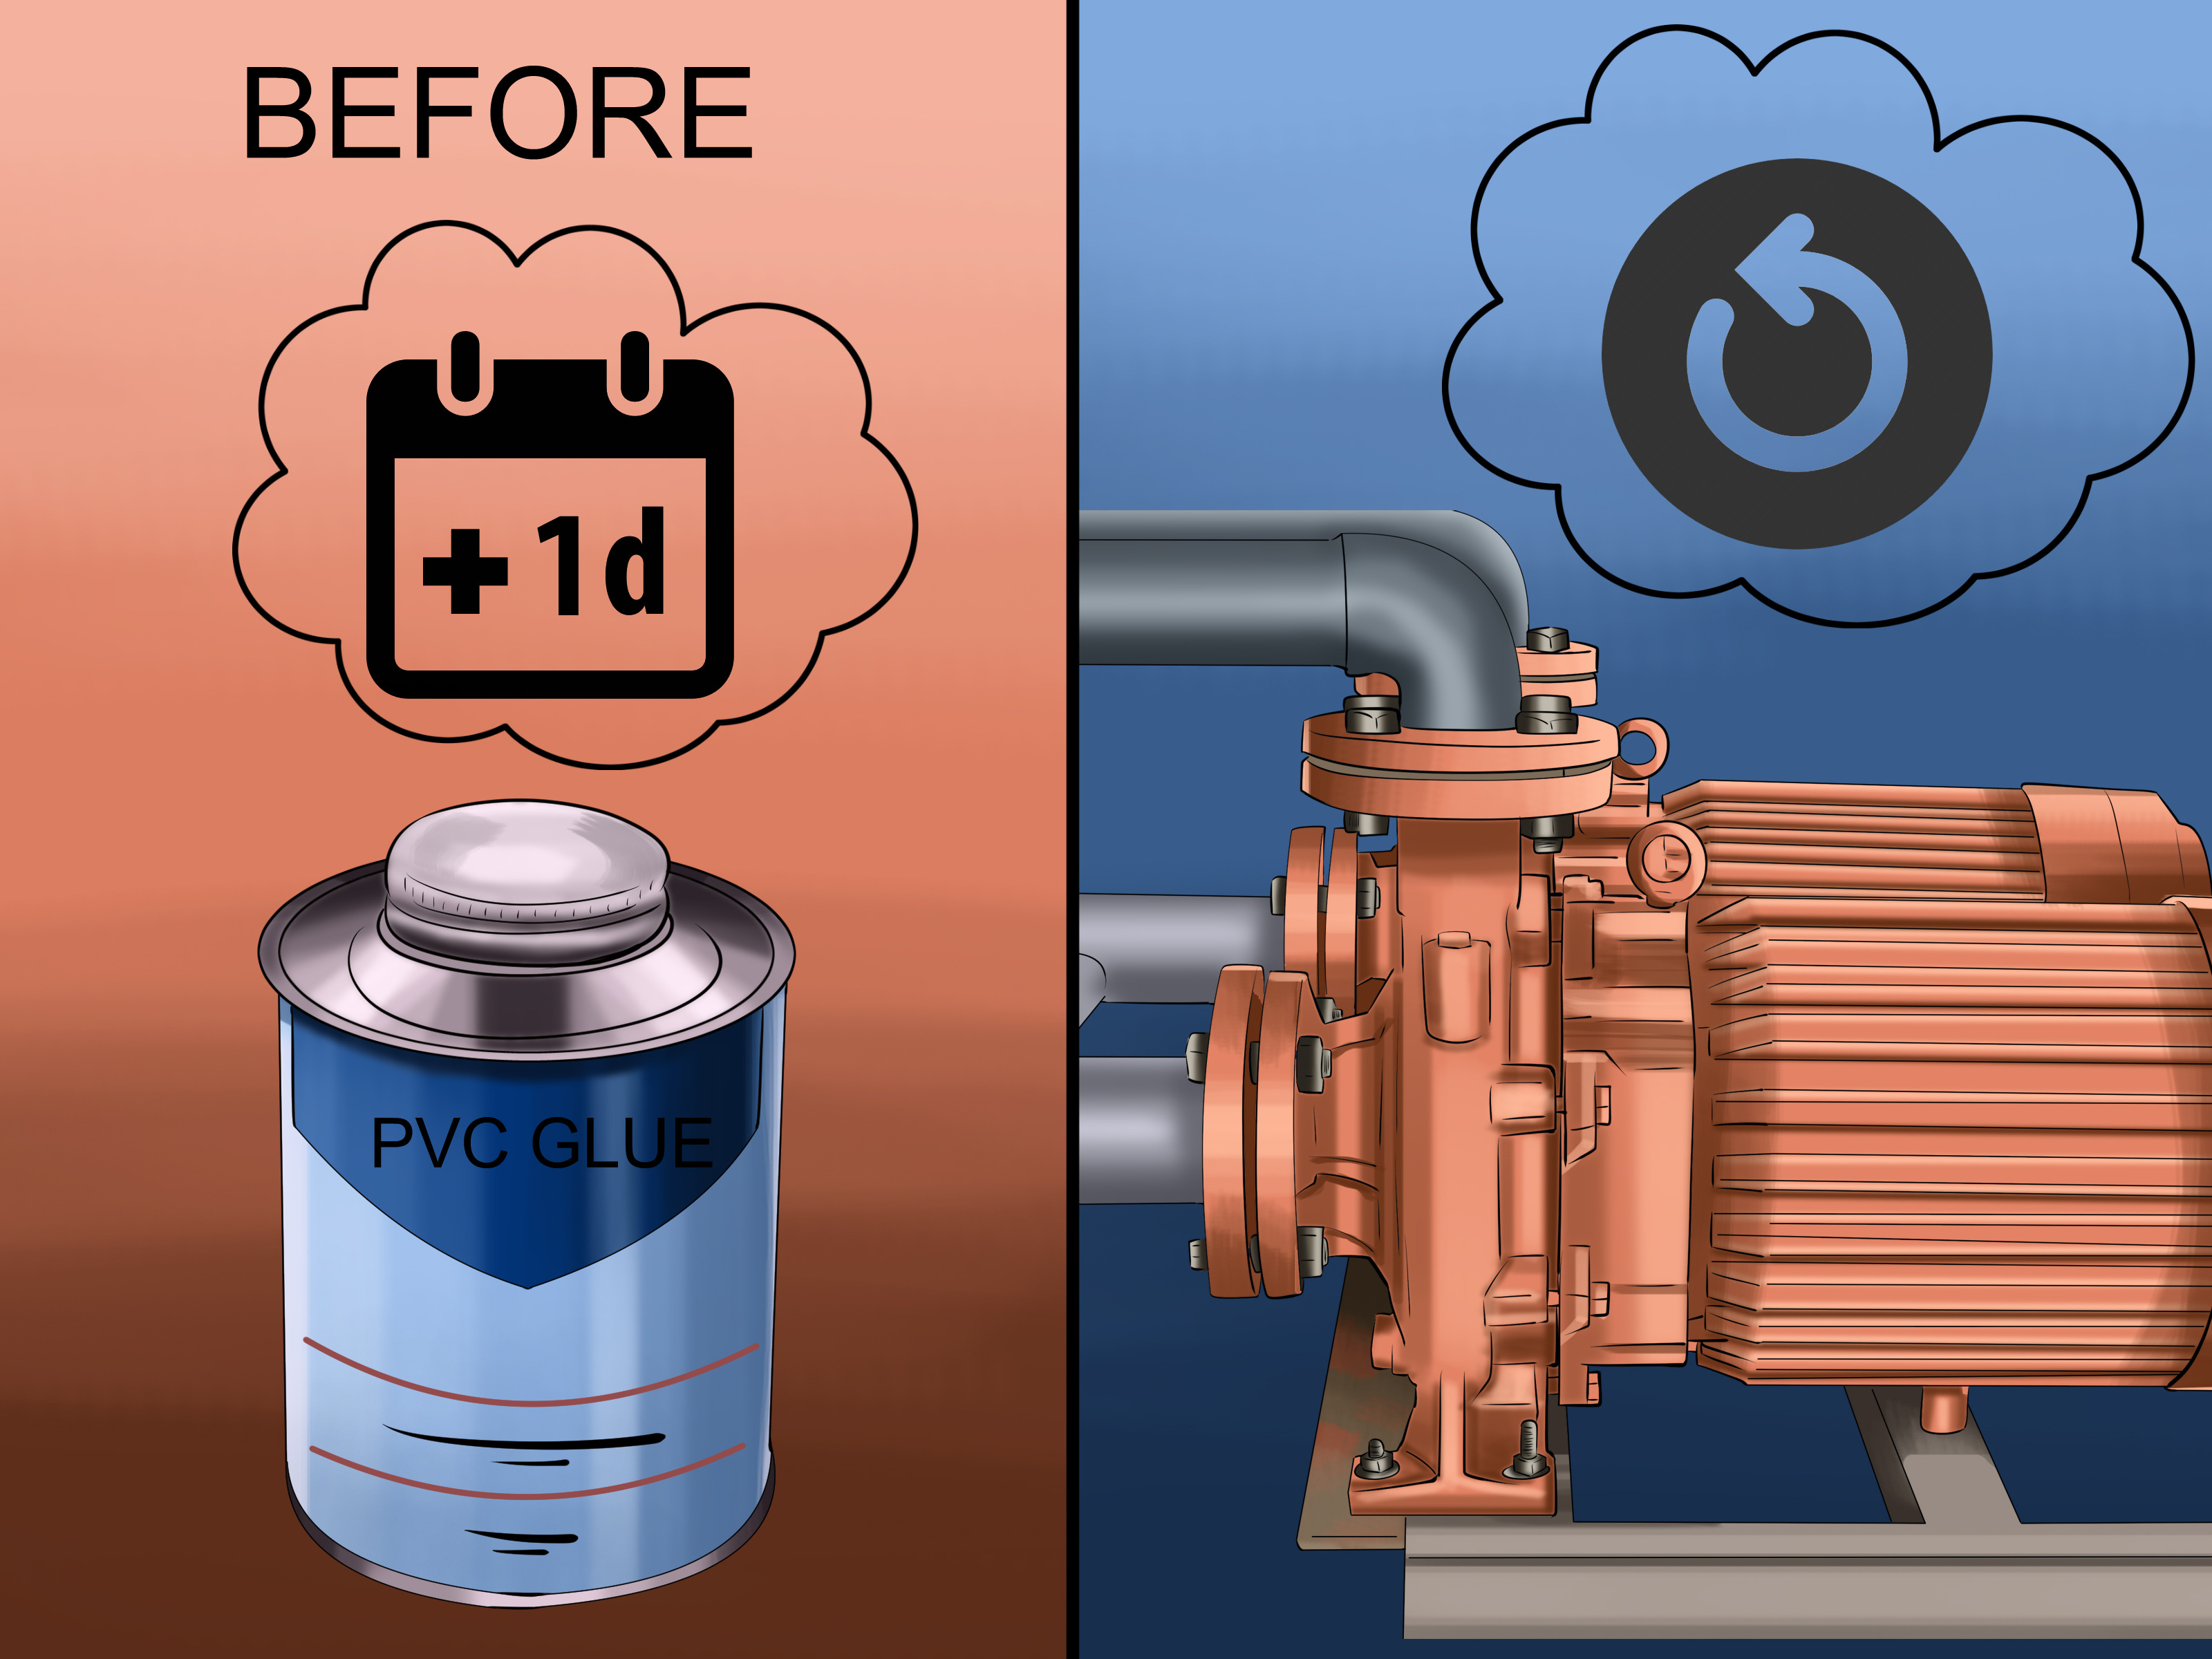 centrifugal pump mechanical seal diagram gfci receptacle wiring how to replace seals in pumps 10 steps